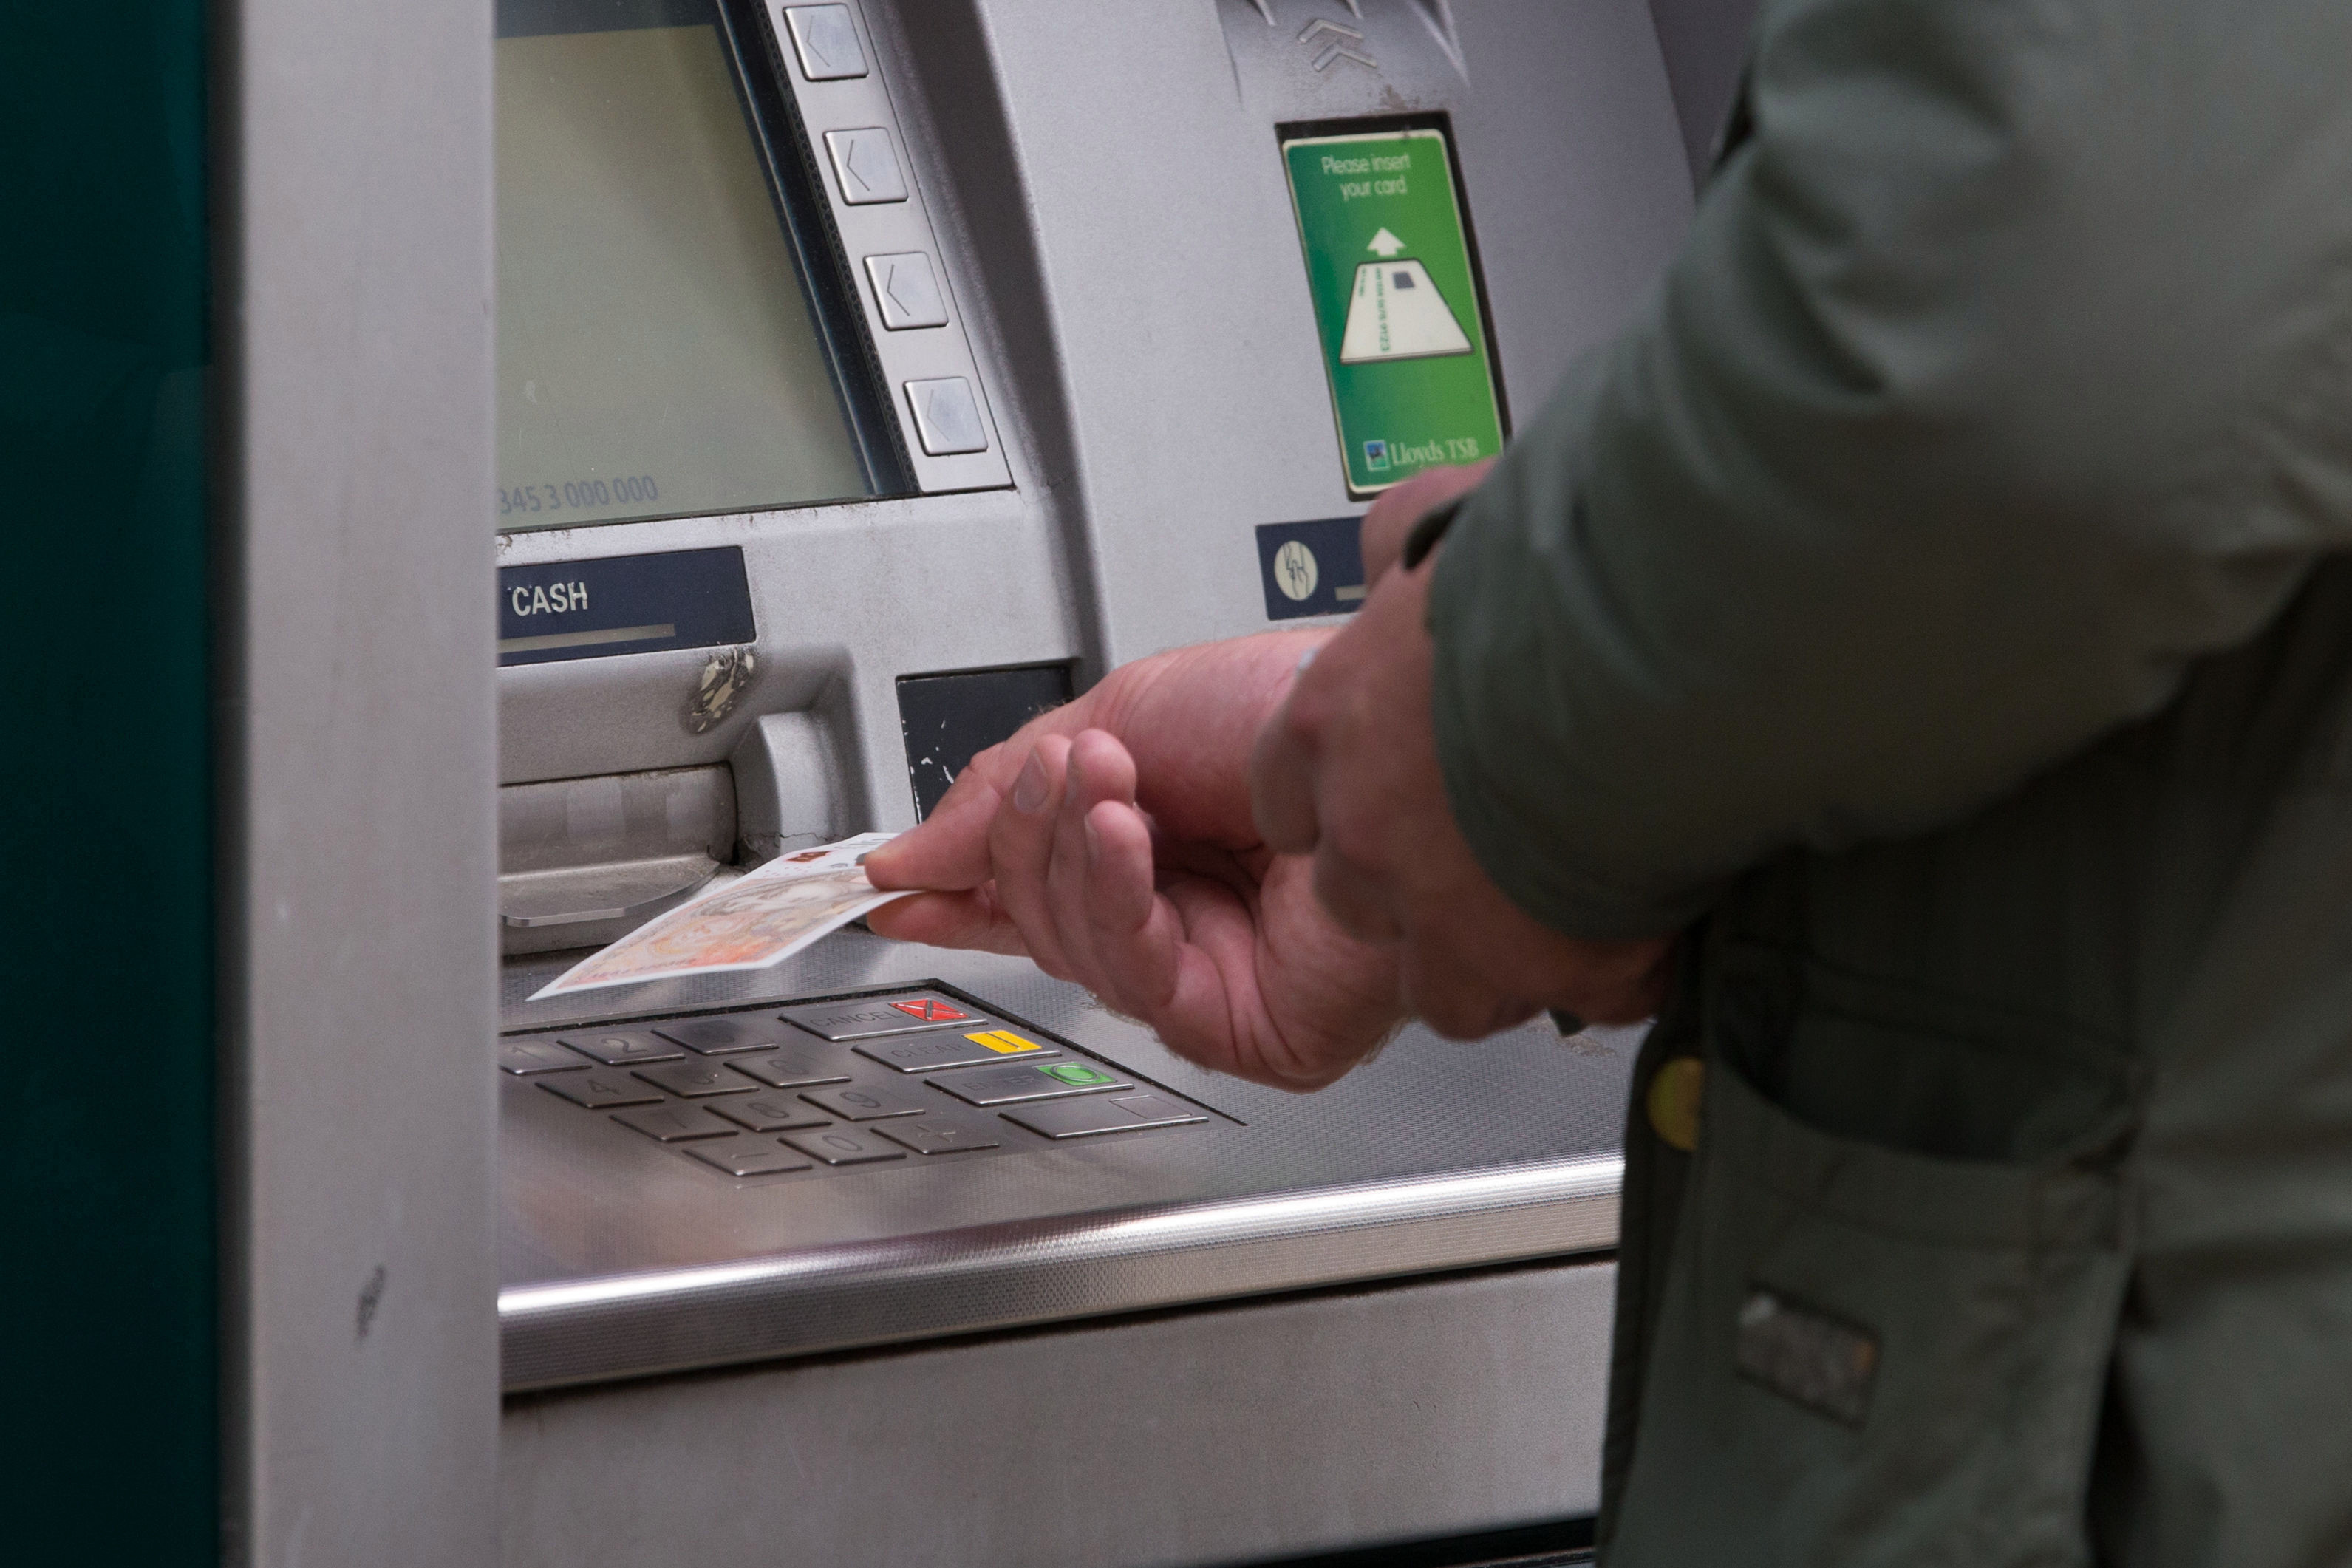 Free cash machines are becoming more sparse in rural communities